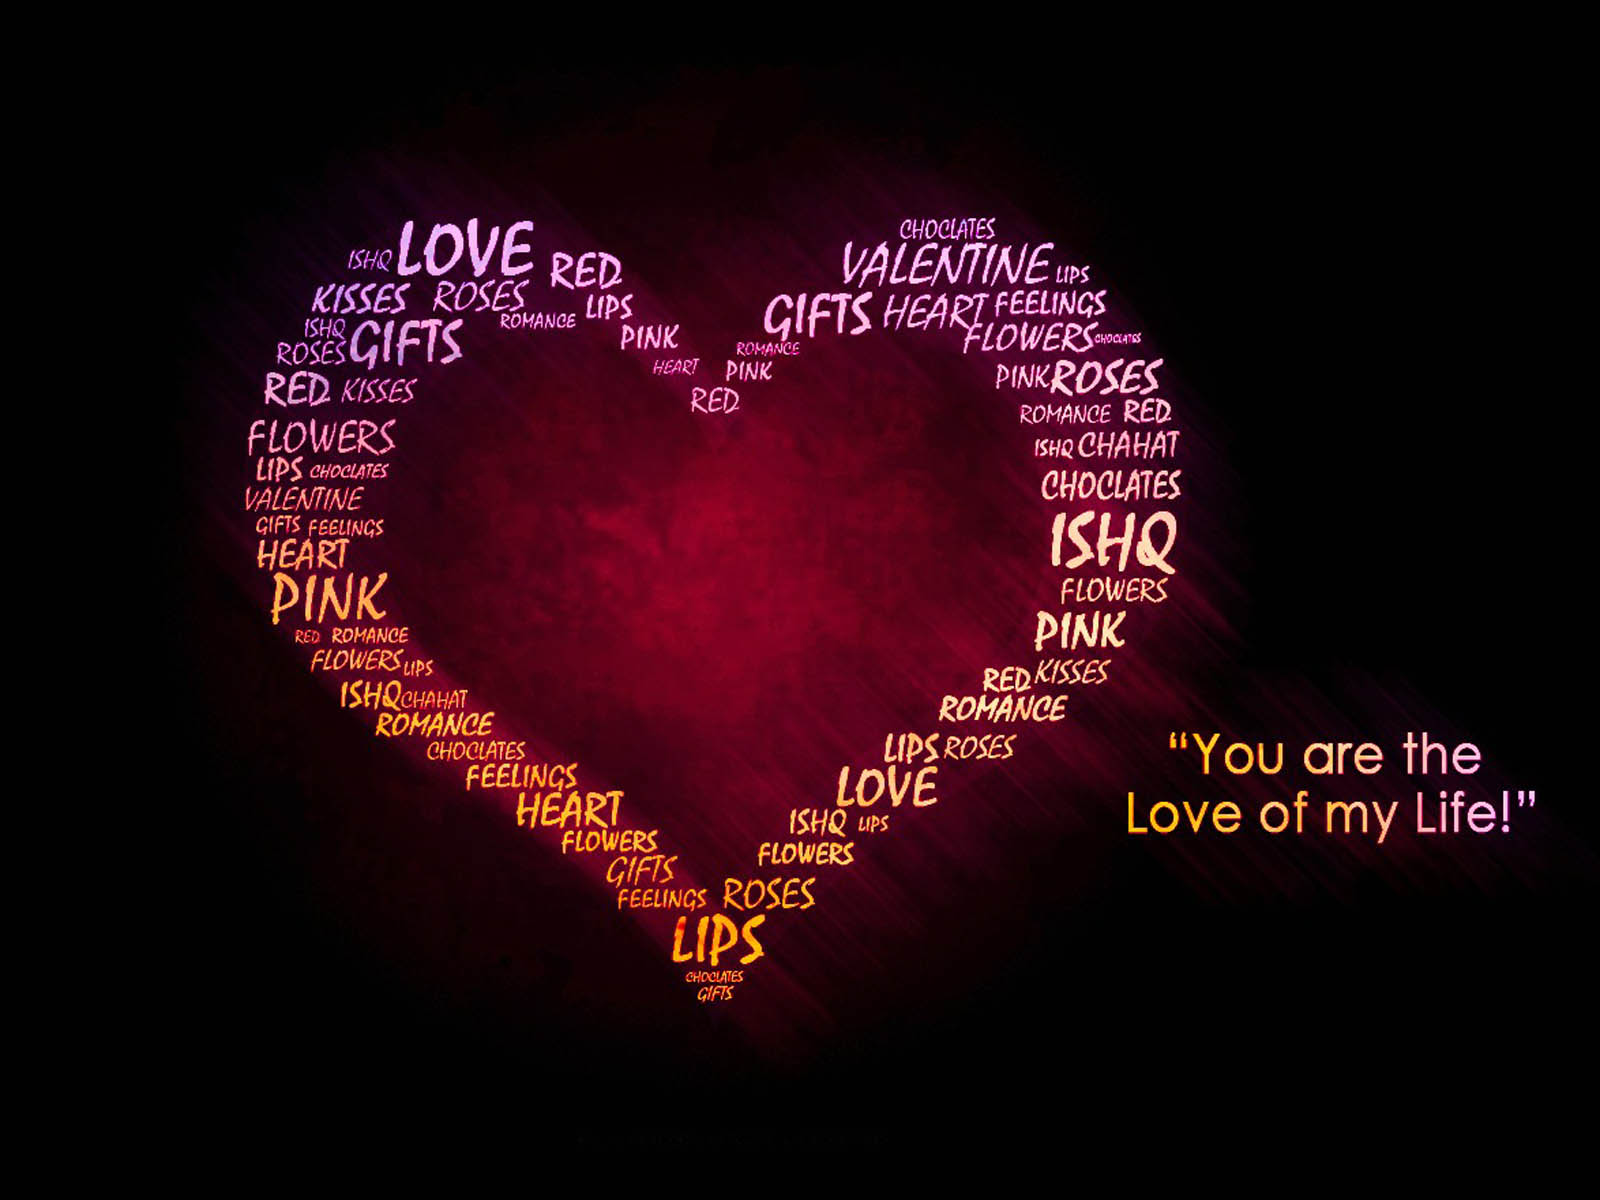 Love Quotes Hd Wallpapers For Laptop : wallpapers: Love Quotes Desktop Wallpapers